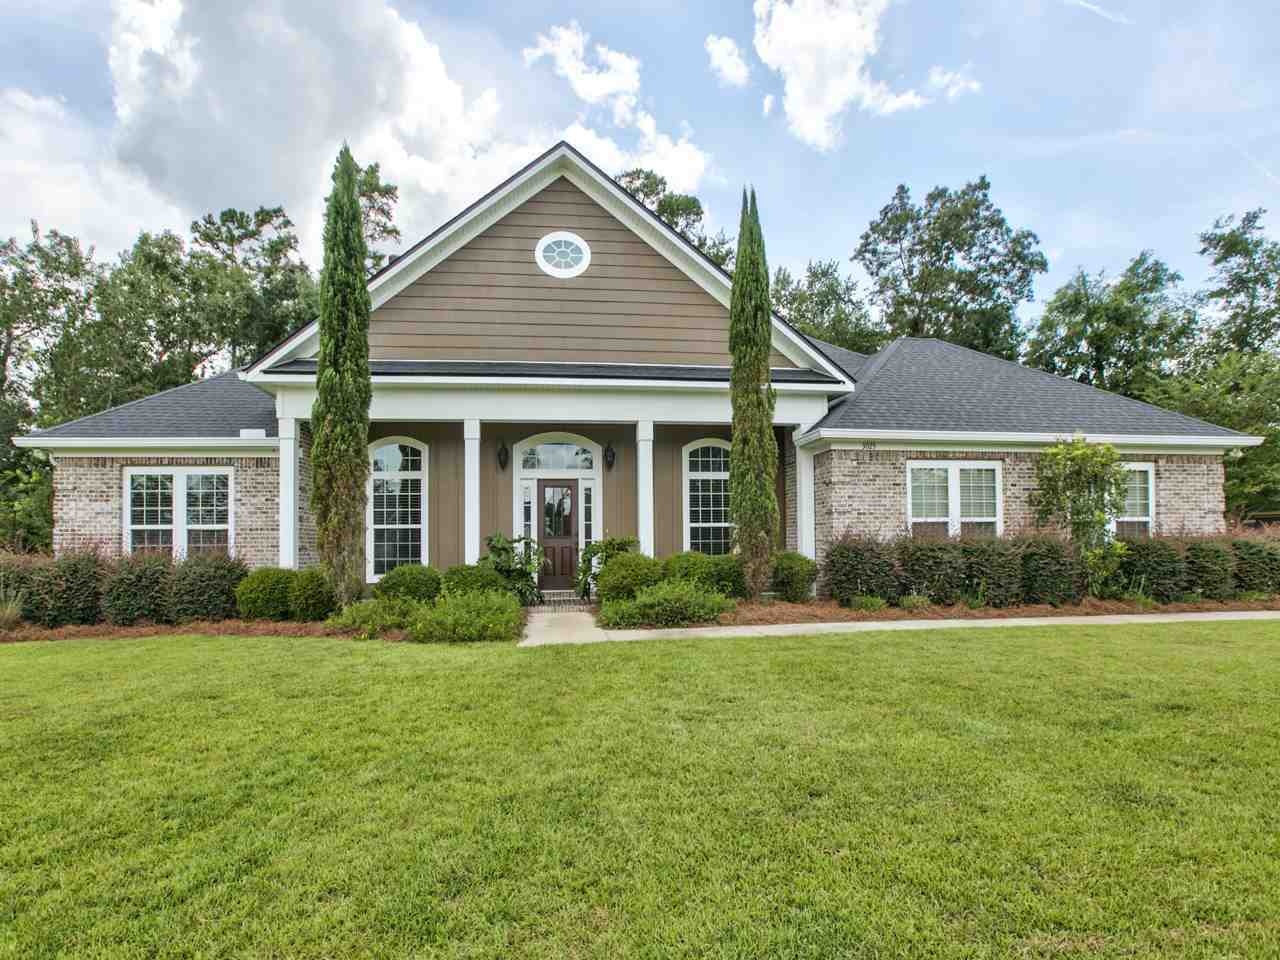 $540,000 - 4Br/4Ba -  for Sale in Golden Eagle, Tallahassee